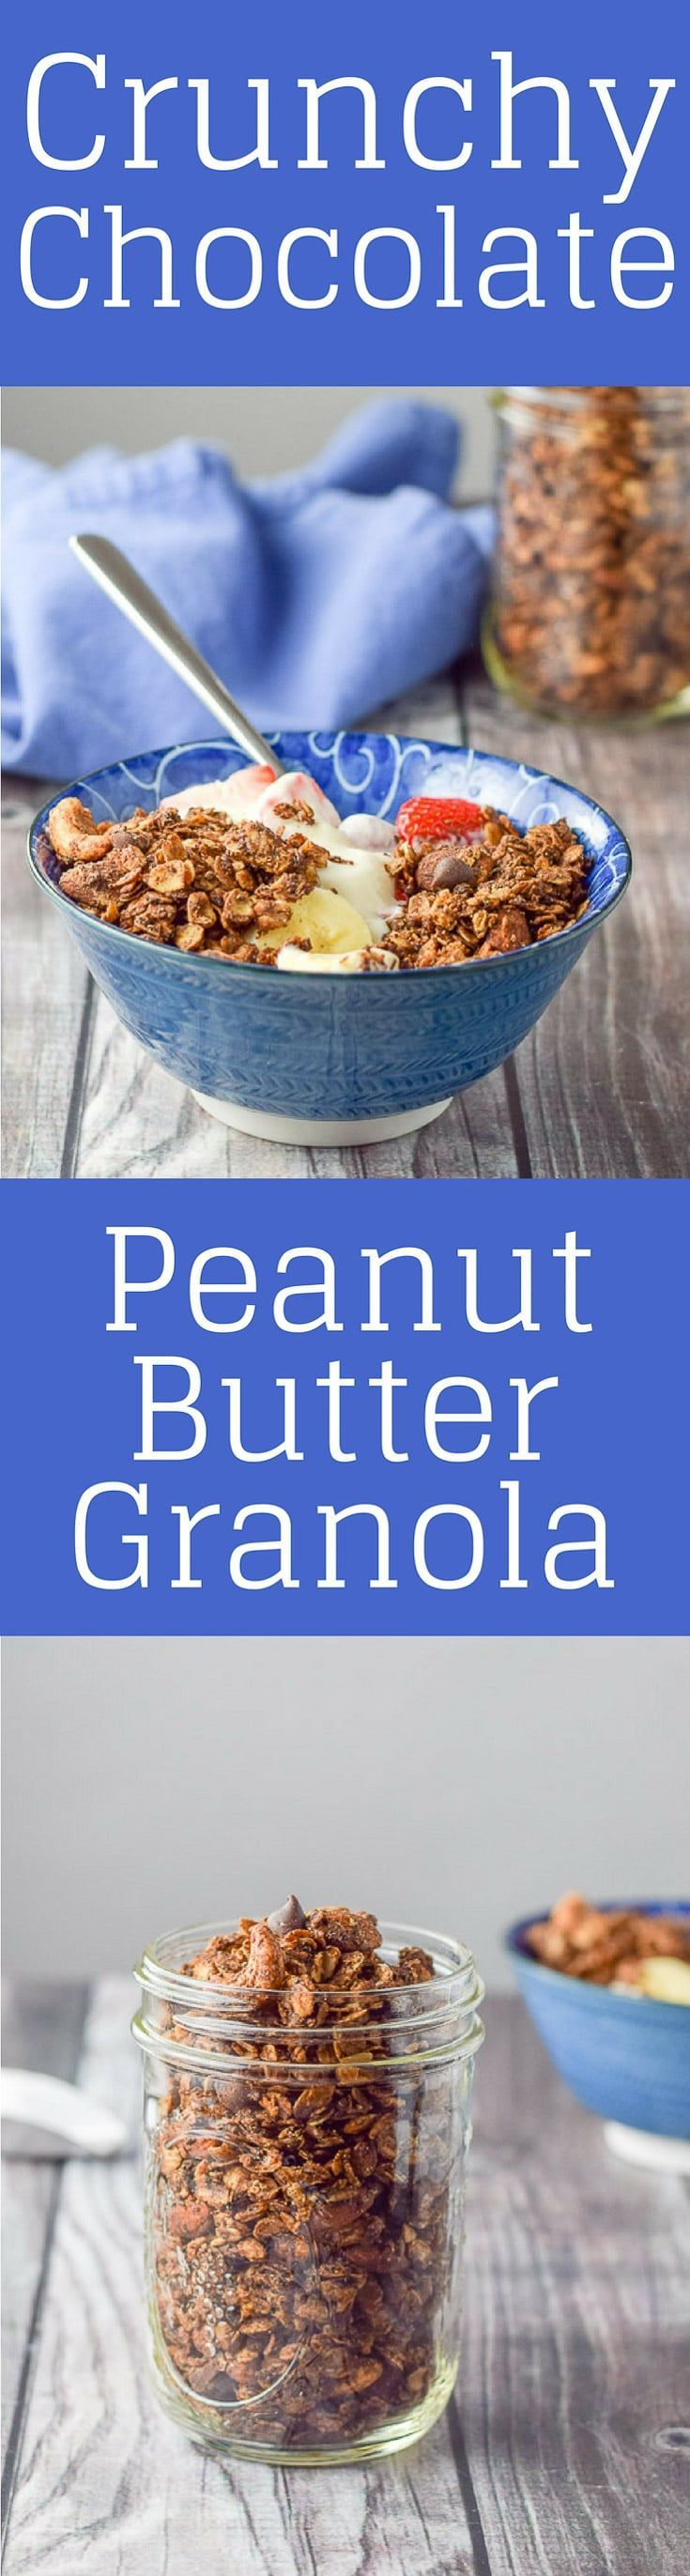 Crunchy Chocolate Peanut Butter Granola is delicious and decedant! I love to heap it on yogurt and fruit! You will too! #granola #breakfast #peanutbuttergranola #dishesdelishrecipes https://ddel.co/ccpbg via @dishesdelish